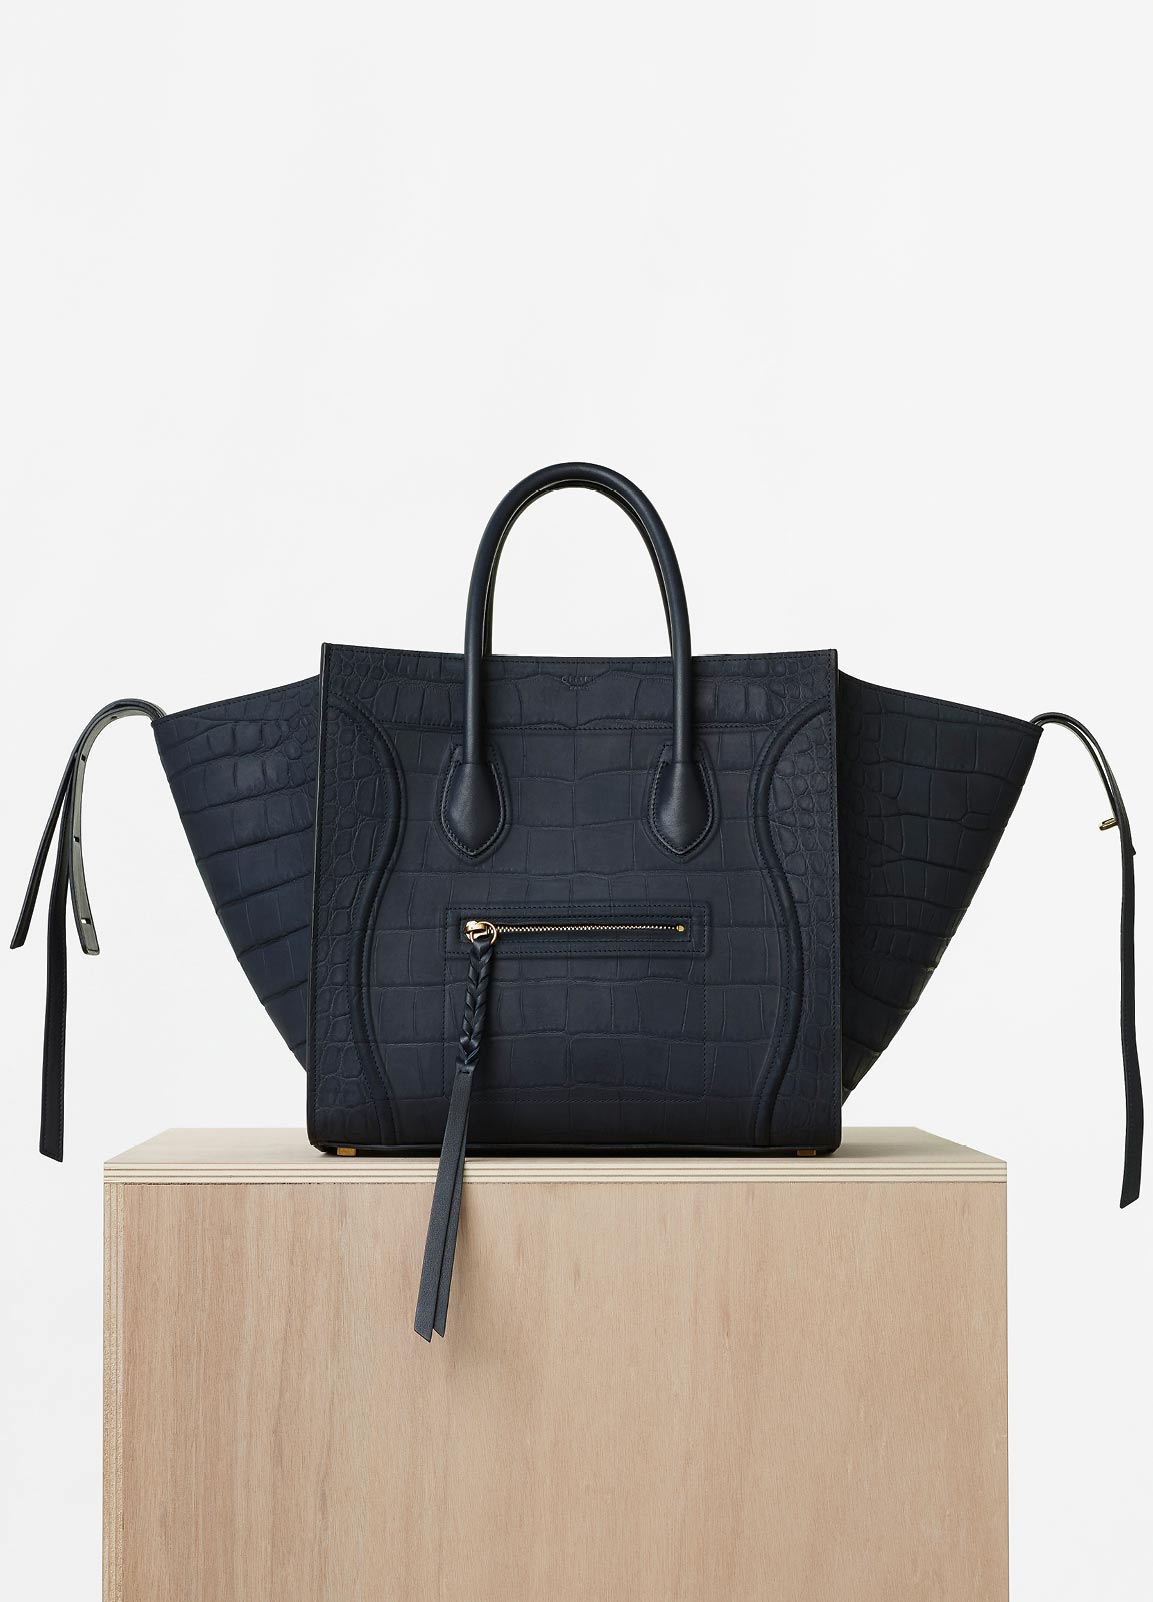 Celine Resort 2016 Bag Collection Featuring New Saddle ...